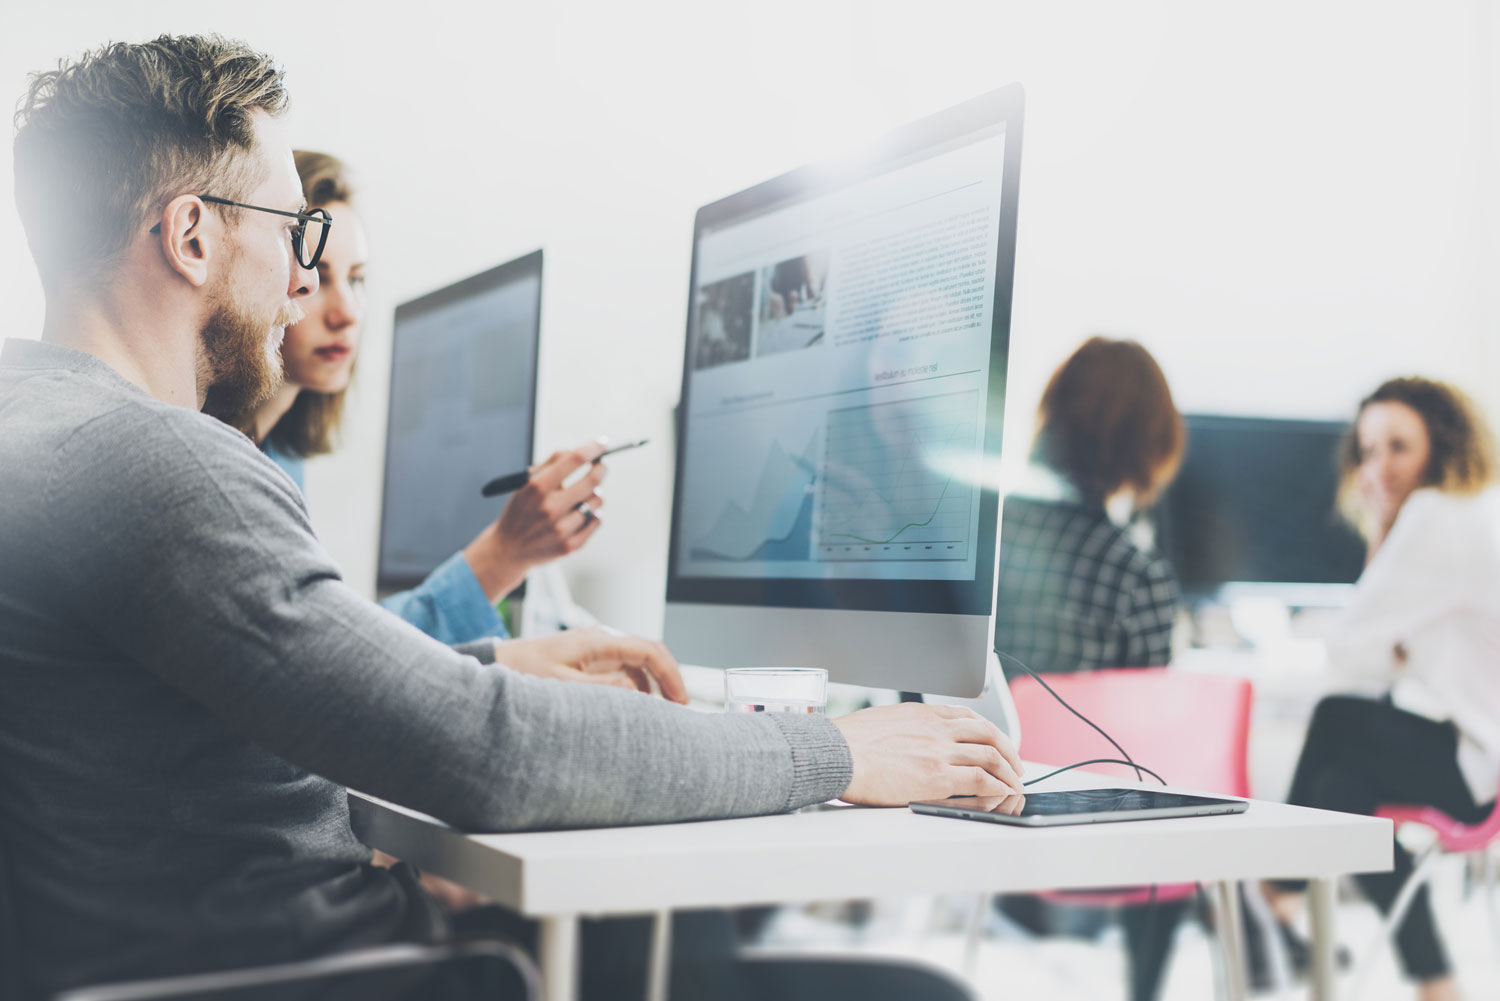 10 Questions to Consider When Building Out Your Nonprofit's Web Tech Stack